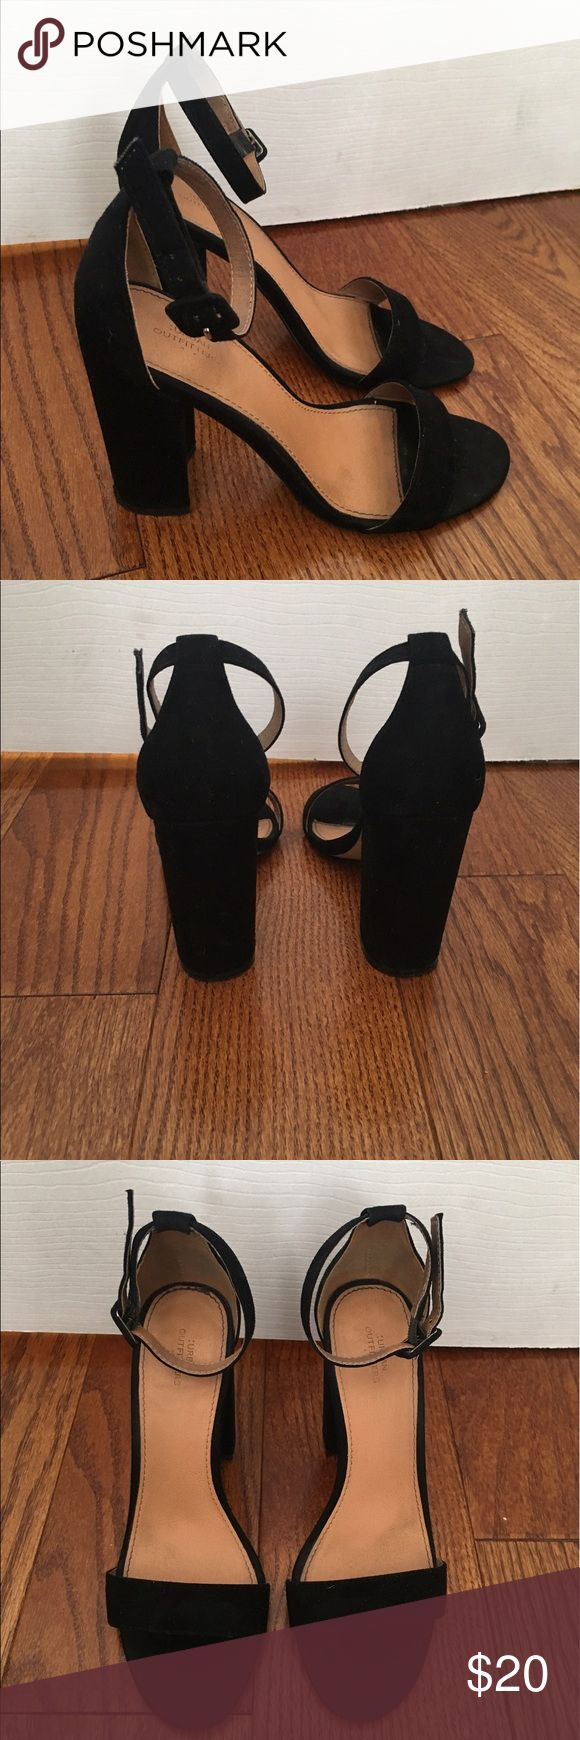 Urban Outfitters heel Strappy black heel from urban outfitters. Size 7. Urban Outfitters Shoes Heels